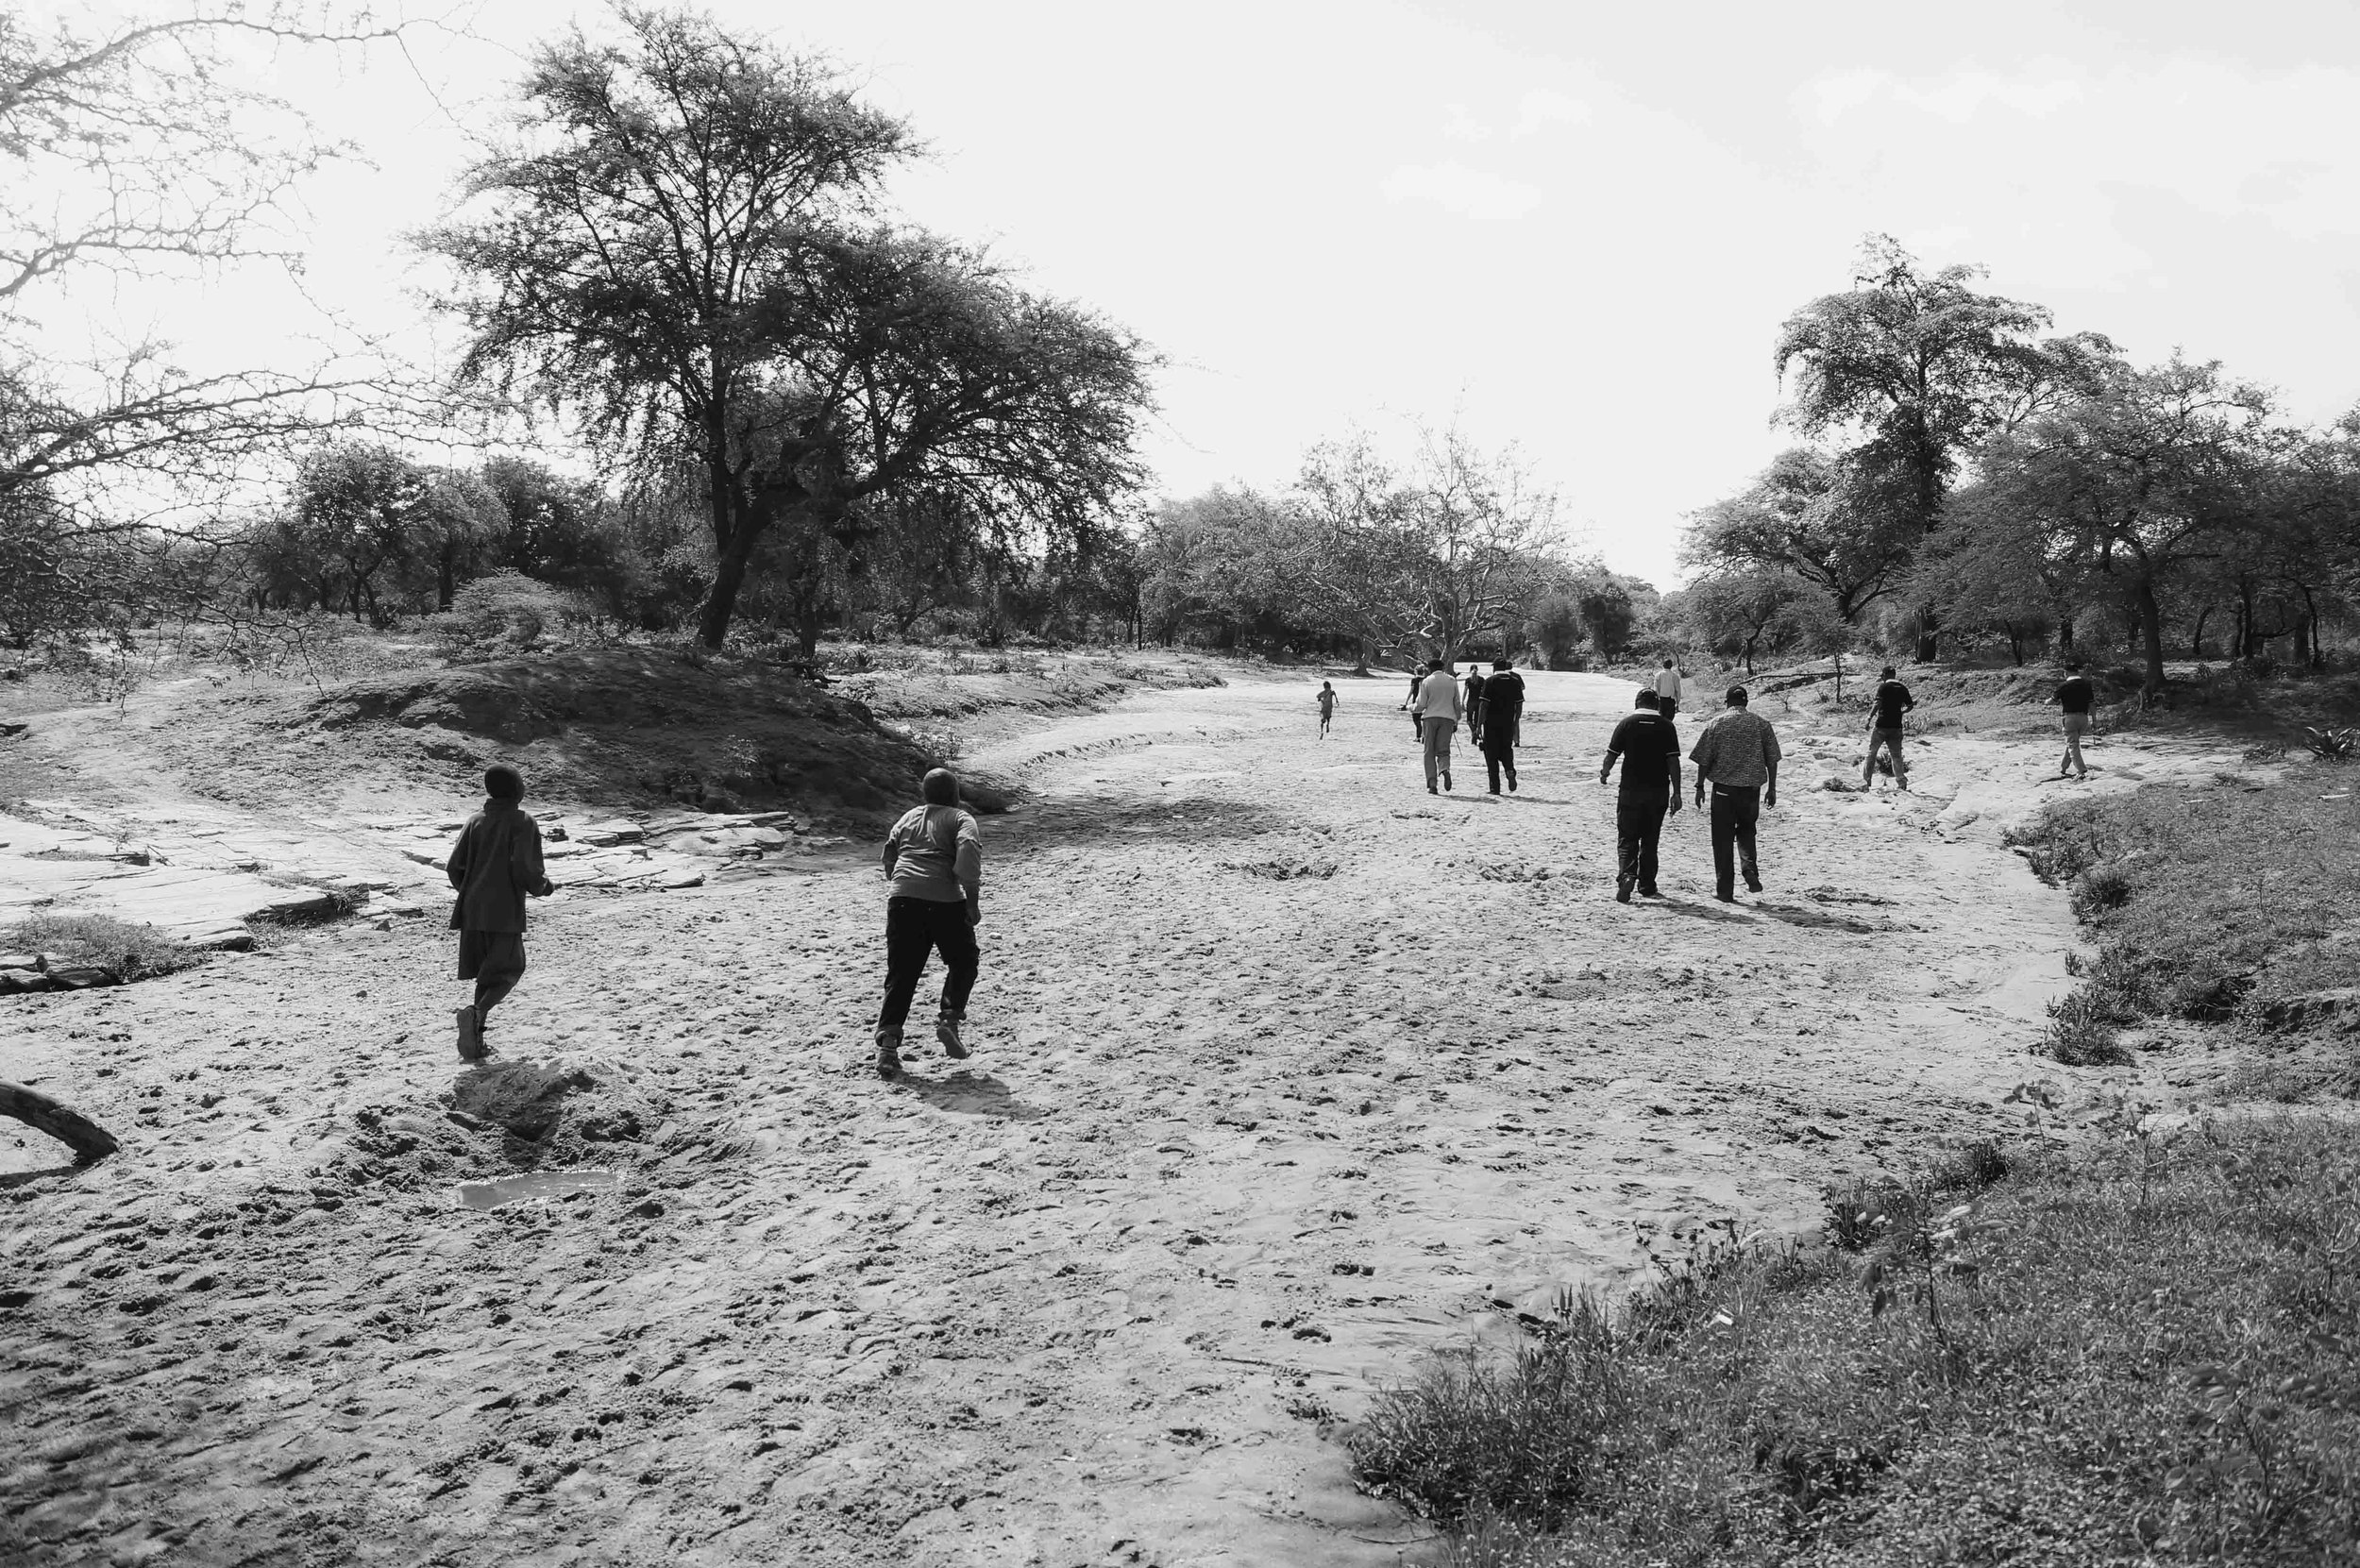 The locals welcomed us and lead us from the village along the barren river bed which was once a source of water.